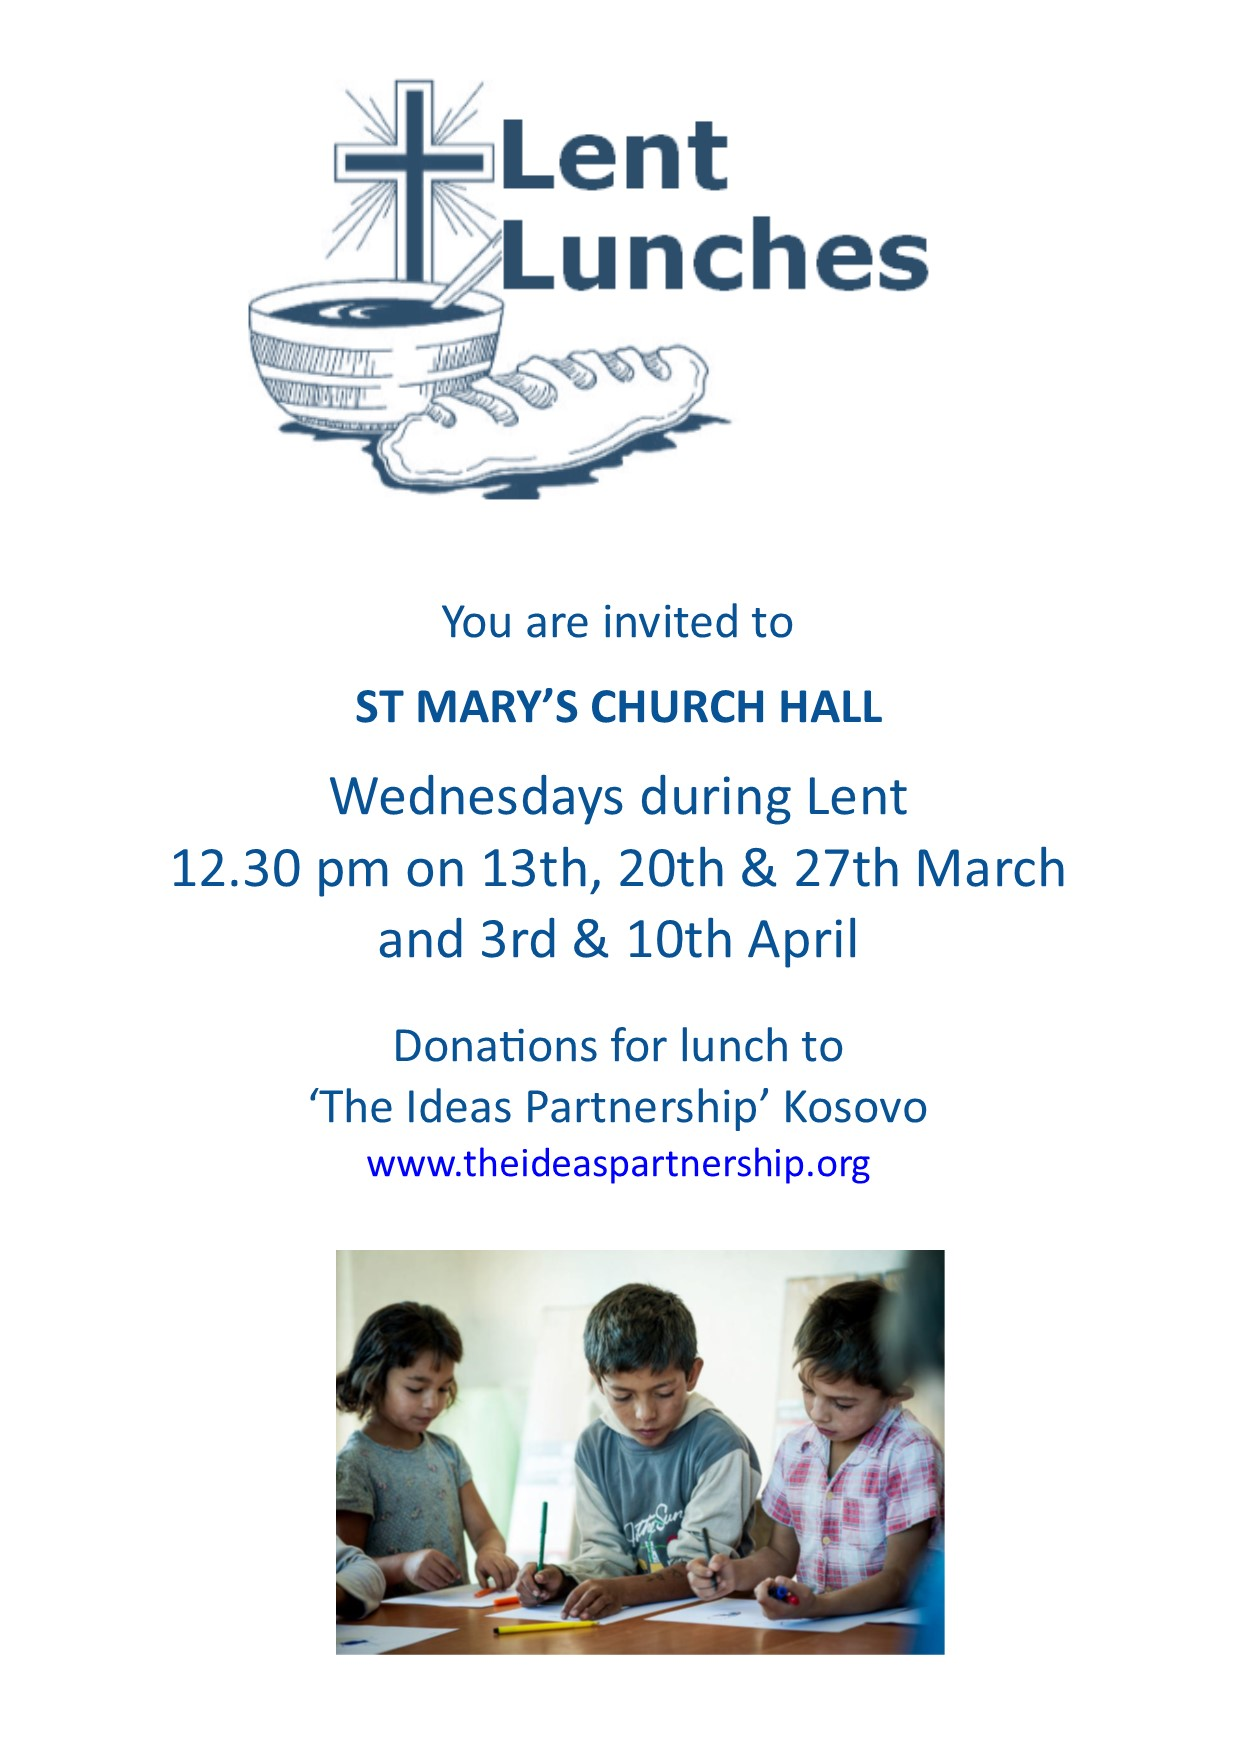 LENT LUNCHES poster.jpg